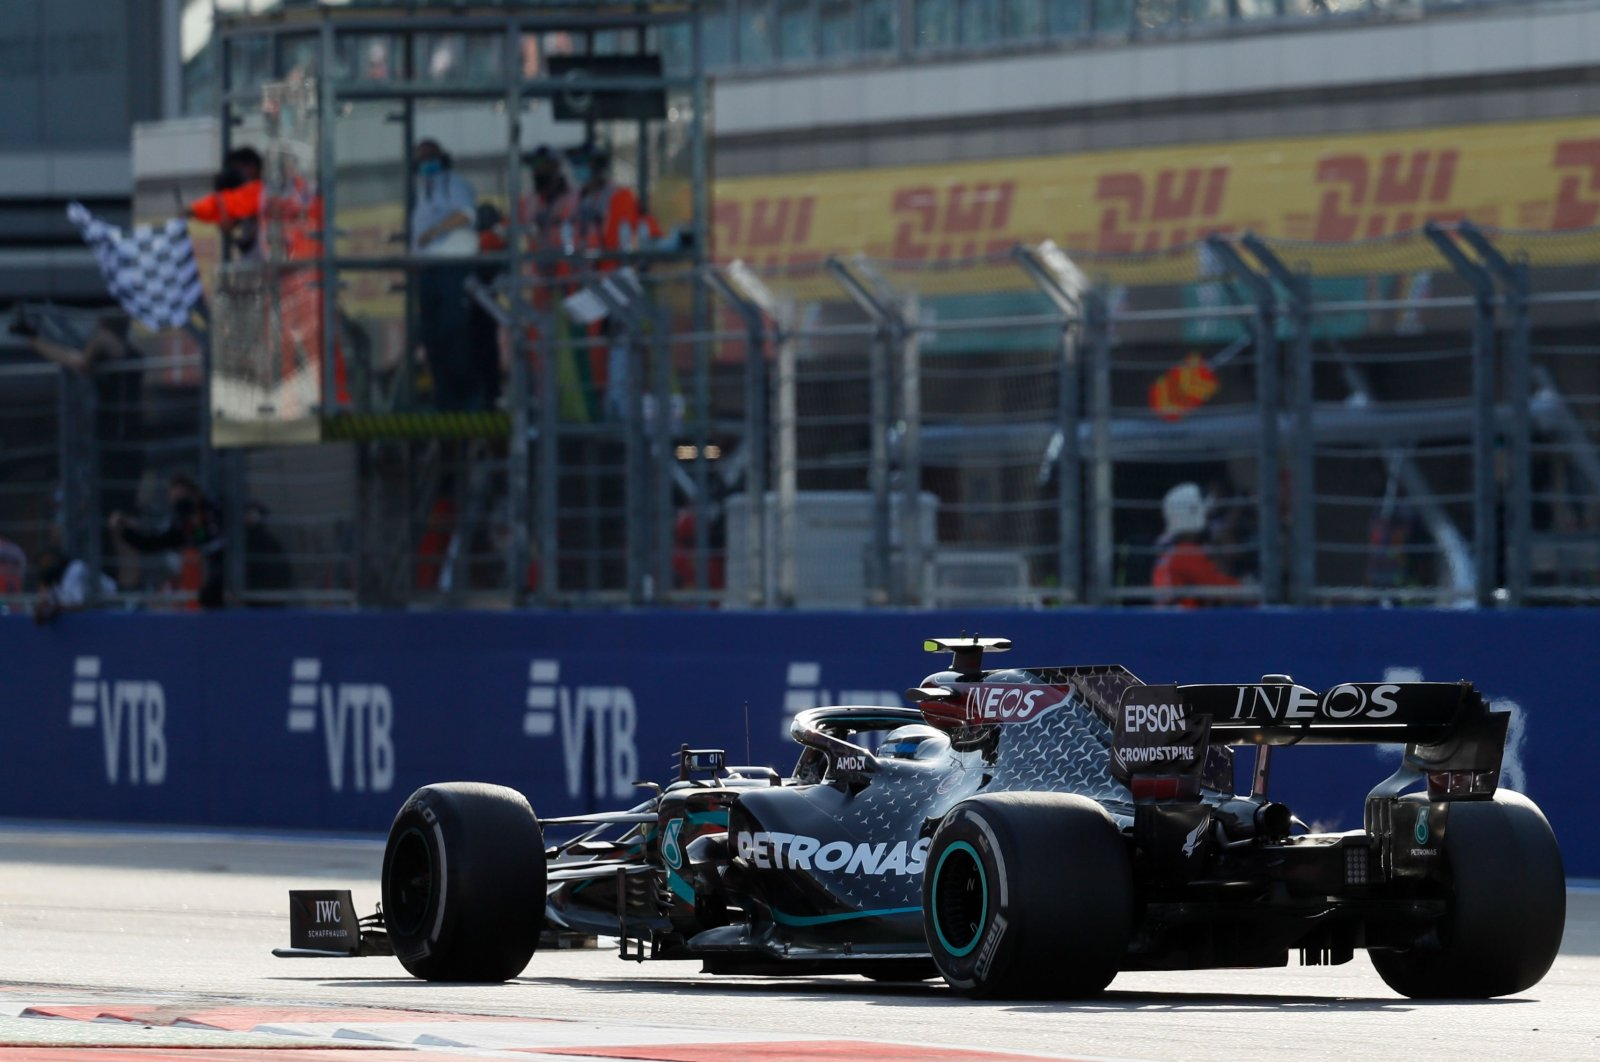 Valtteri Bottas takes the chequered flag to win the race in Sochi, Russia, Sept. 27, 2020. (AFP Photo)